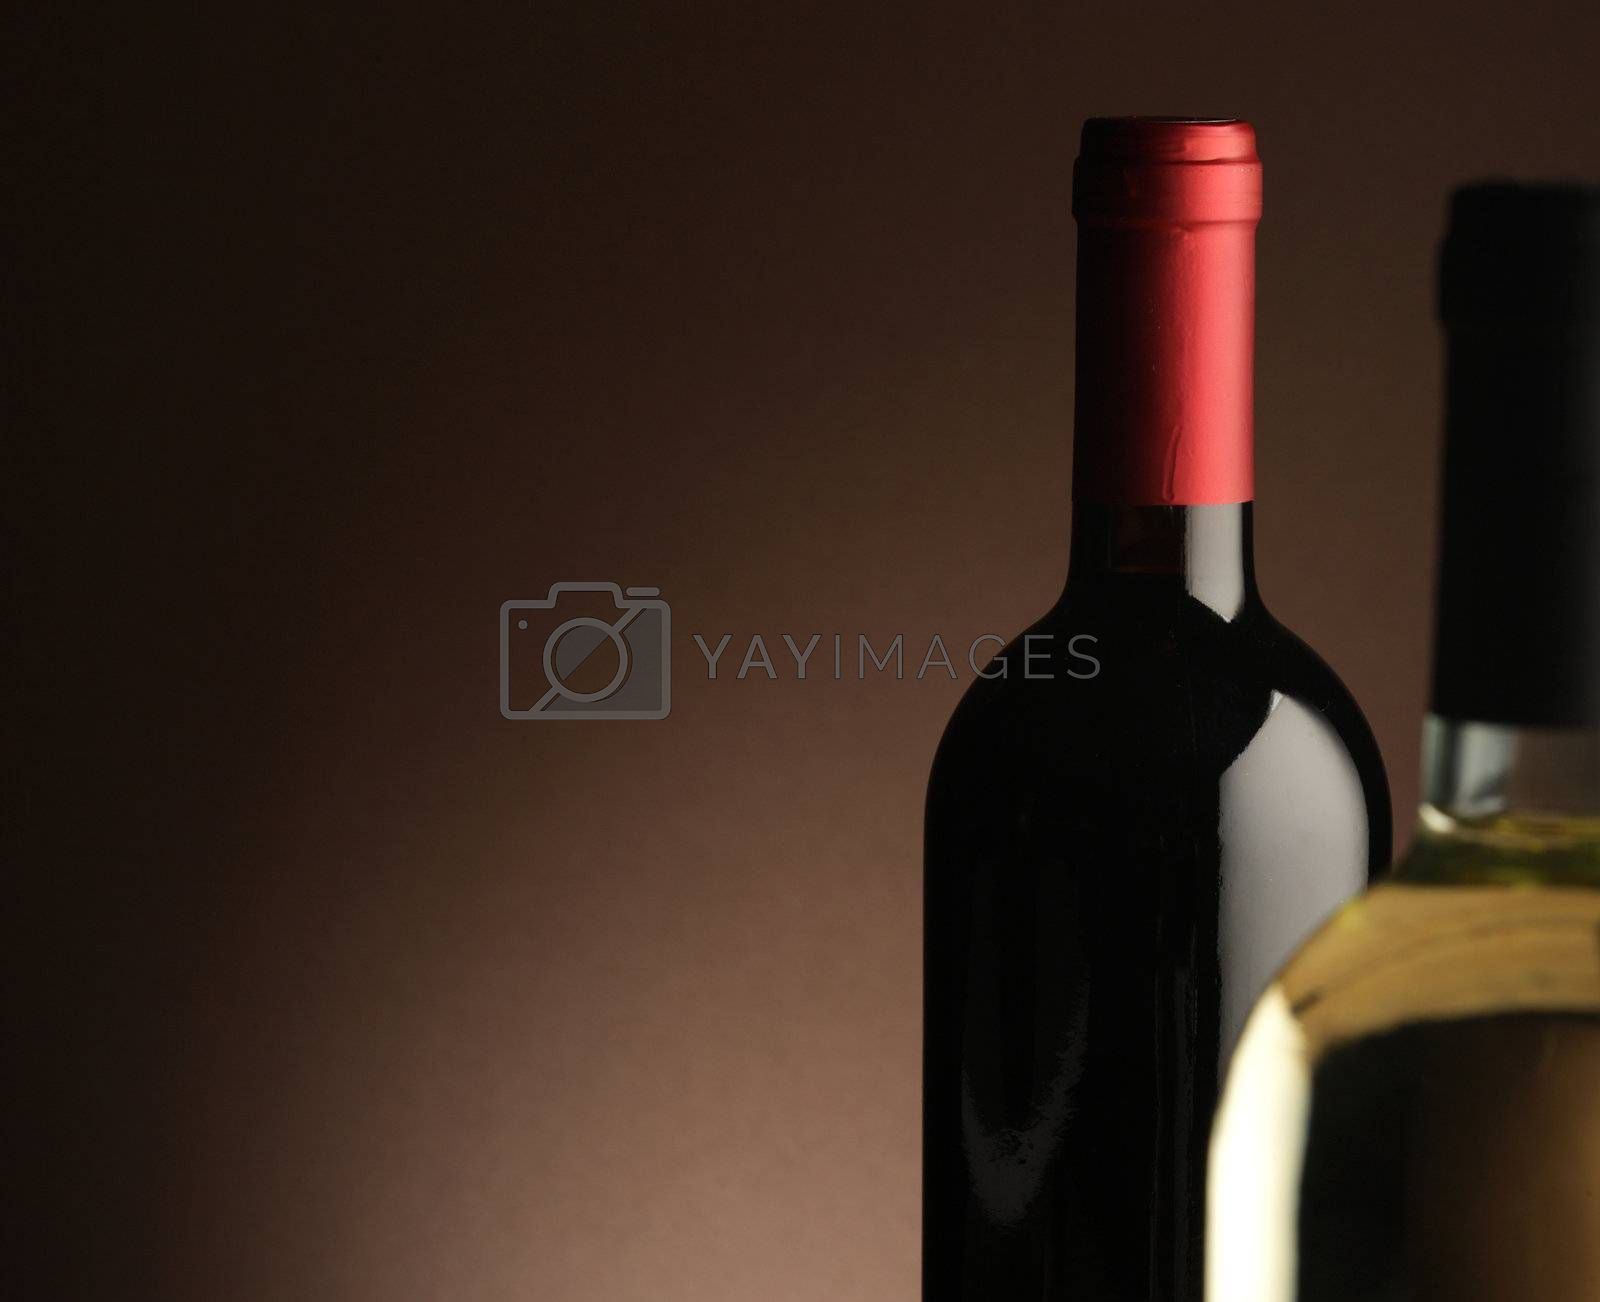 red wine and white wine bottle